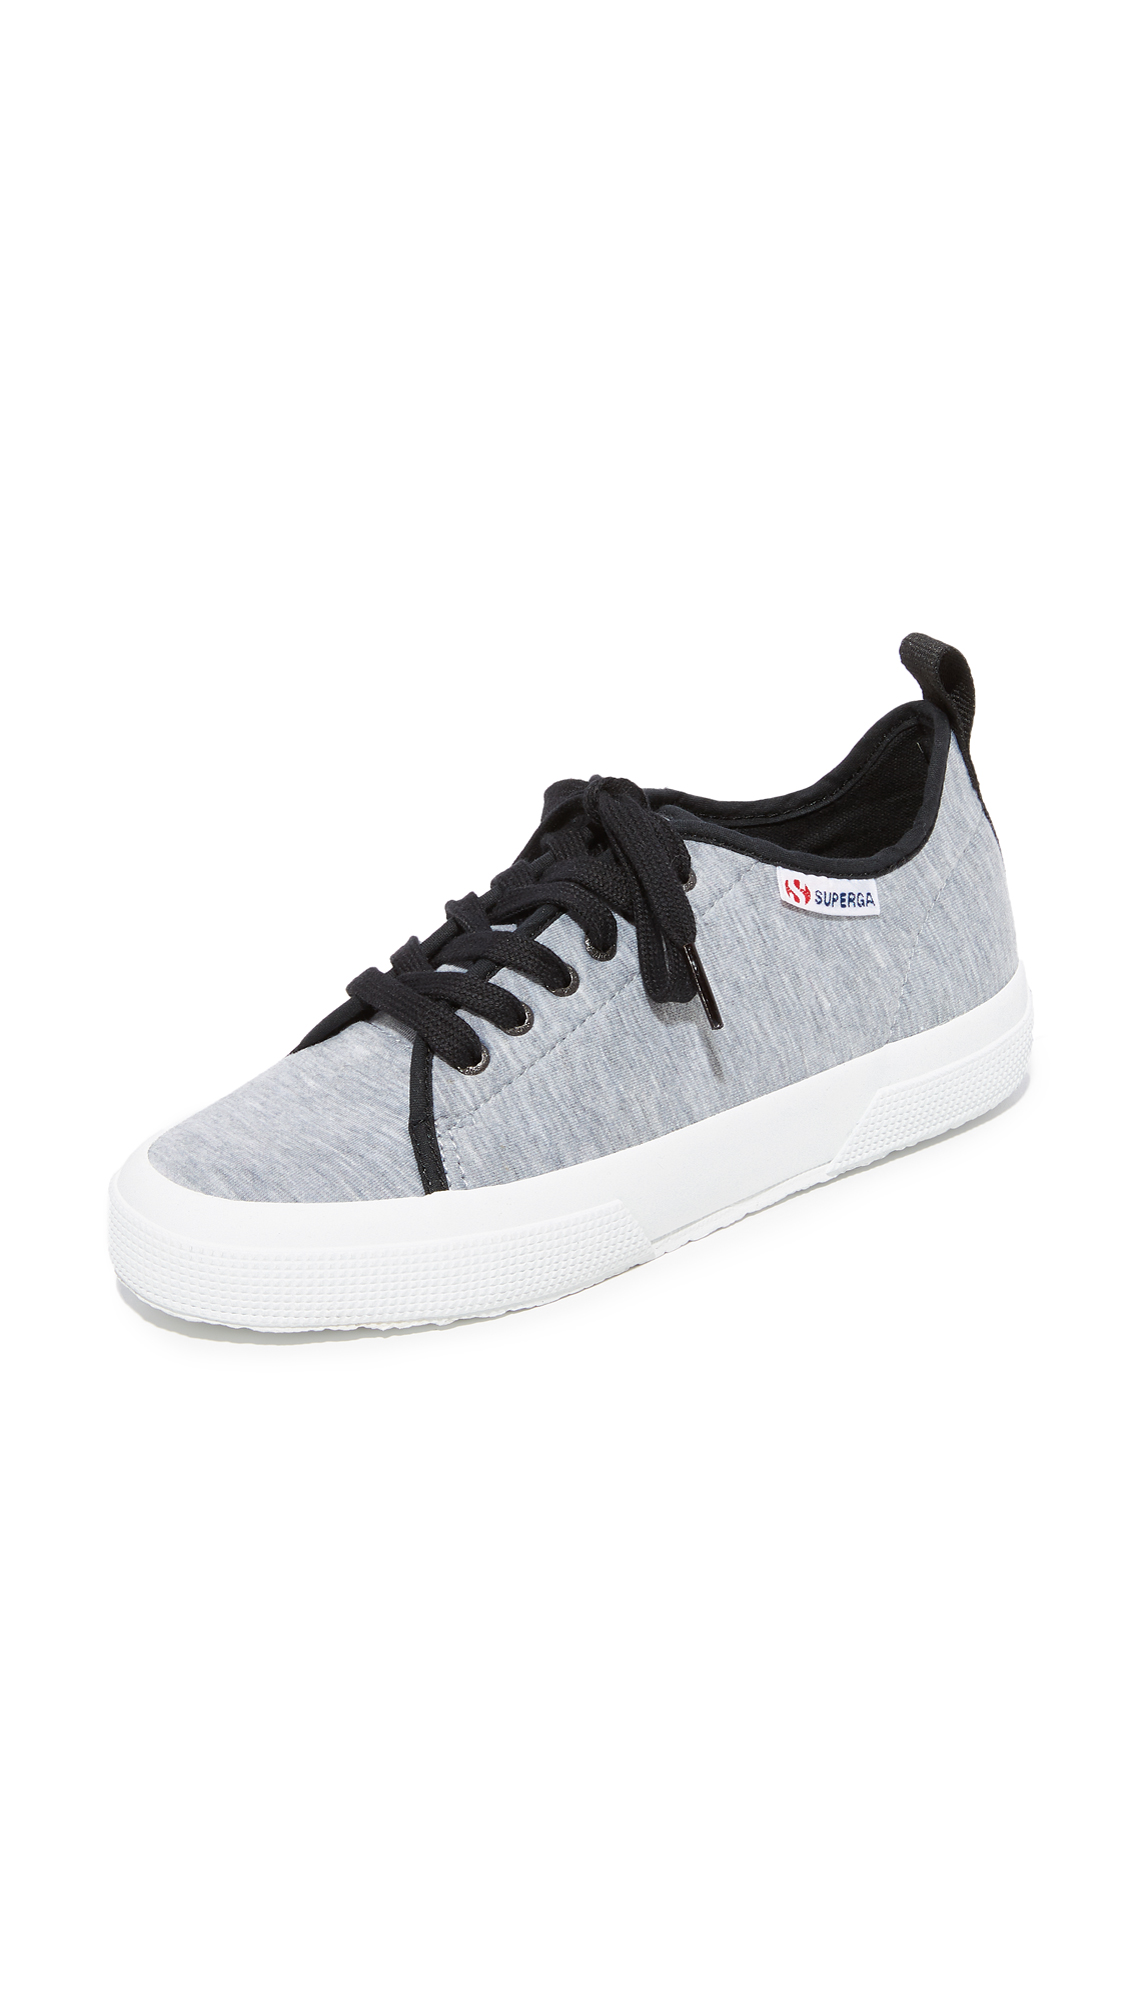 Superga Neoprene Scuba Classic Sneakers - Grey